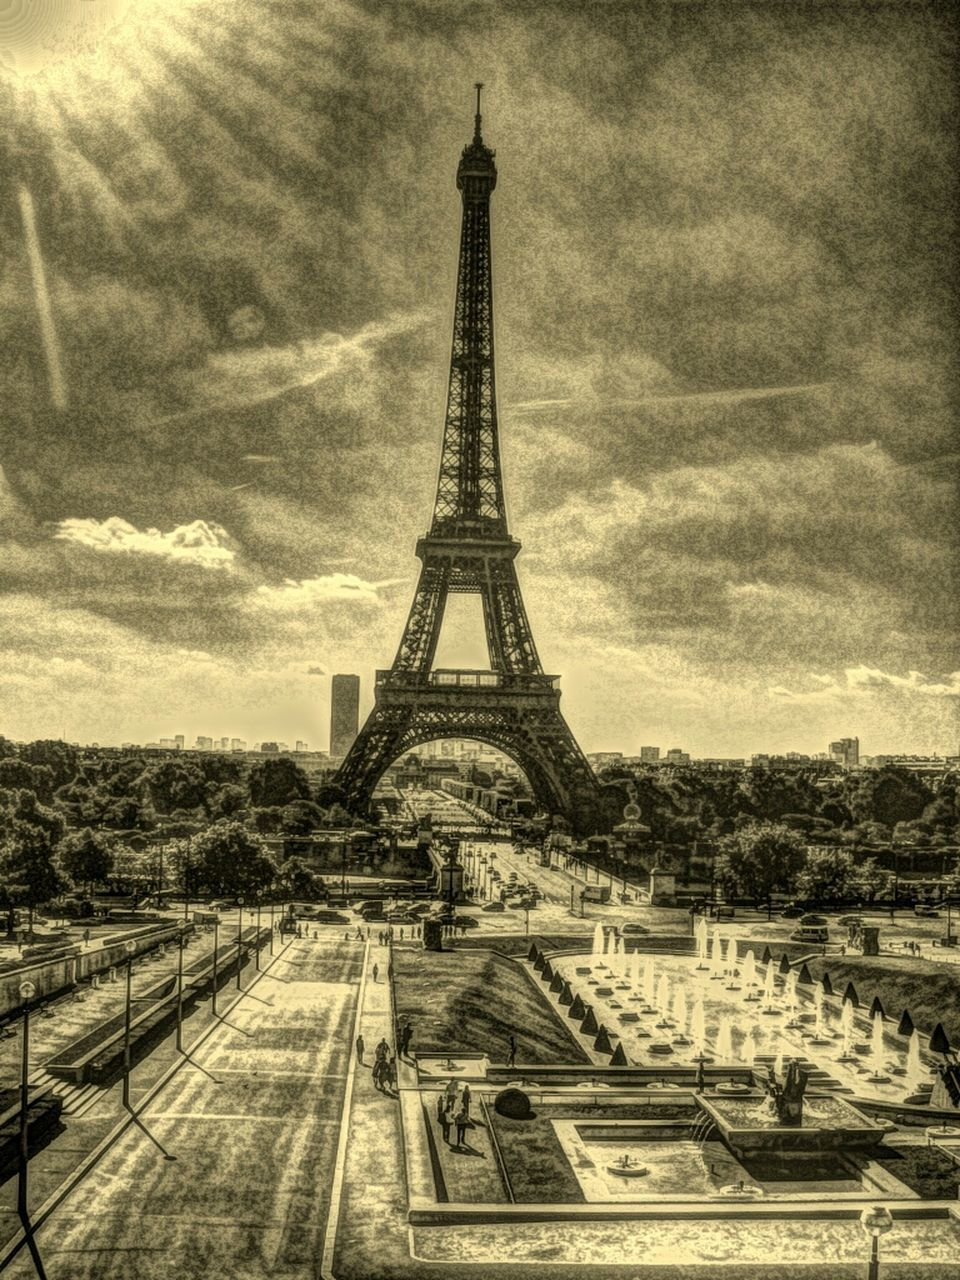 architecture, eiffel tower, built structure, famous place, international landmark, tower, sky, travel destinations, culture, building exterior, capital cities, tall - high, tourism, travel, city, history, metal, cloud - sky, architectural feature, outdoors